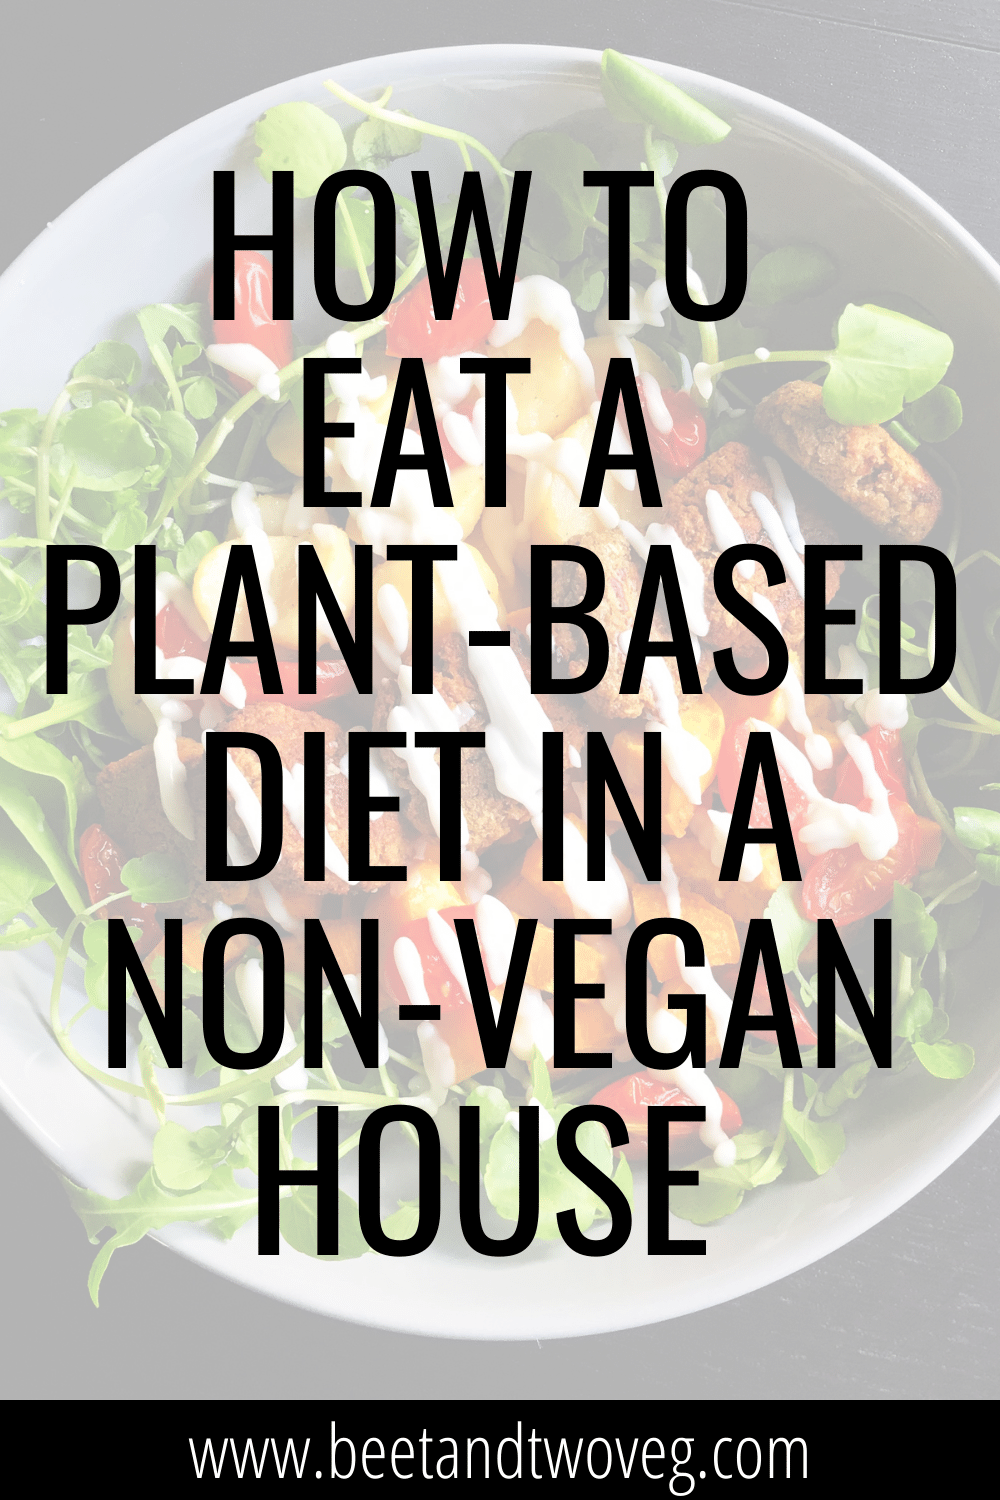 how to eat a plant-based diet in a non-vegan house